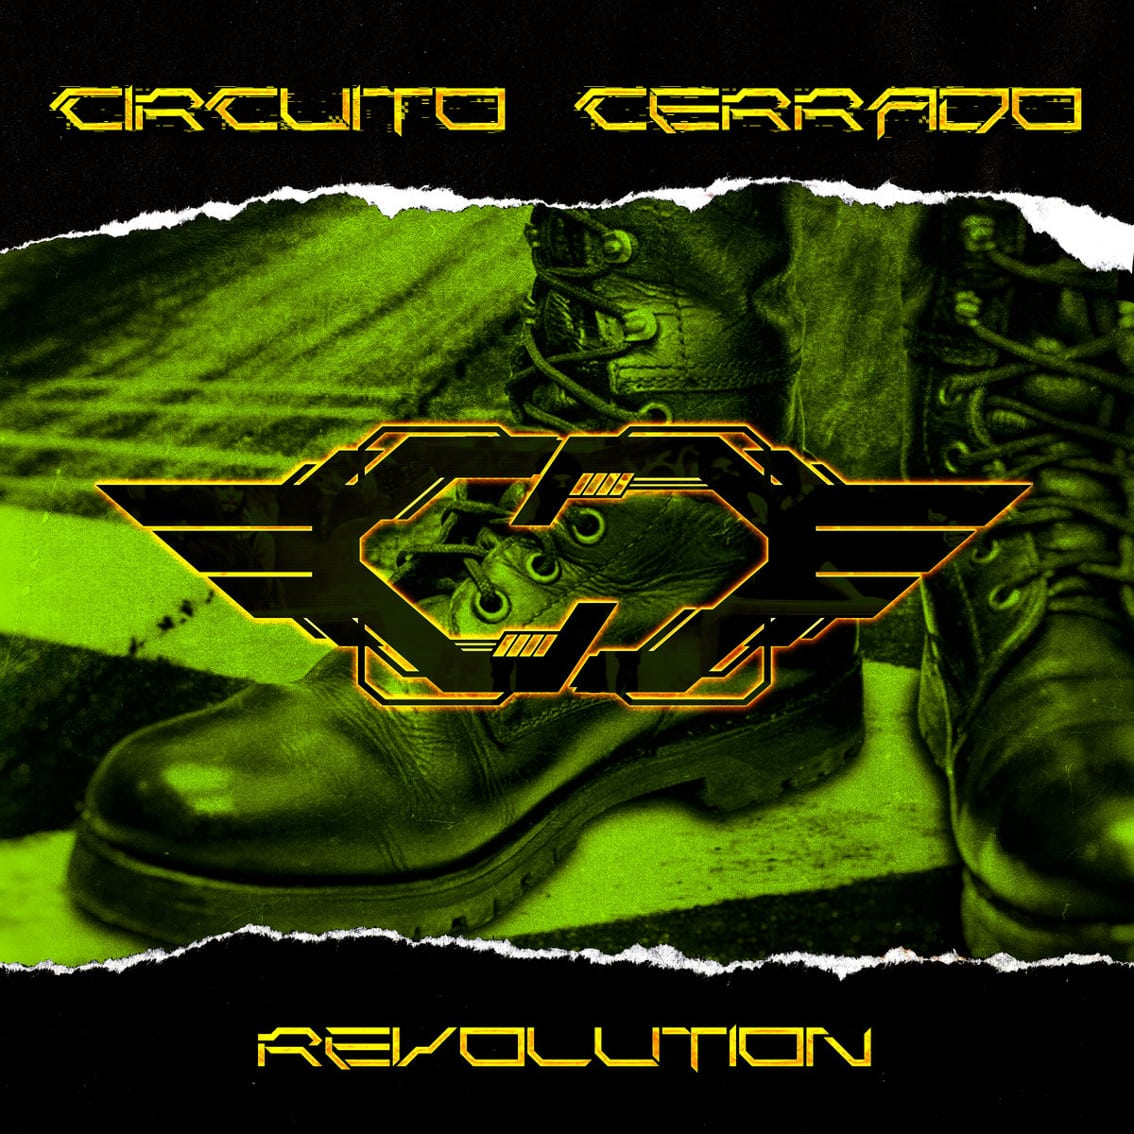 Mexico's harsh electro act Circuito Cerrado hits back with 4-track download EP'Revolution'